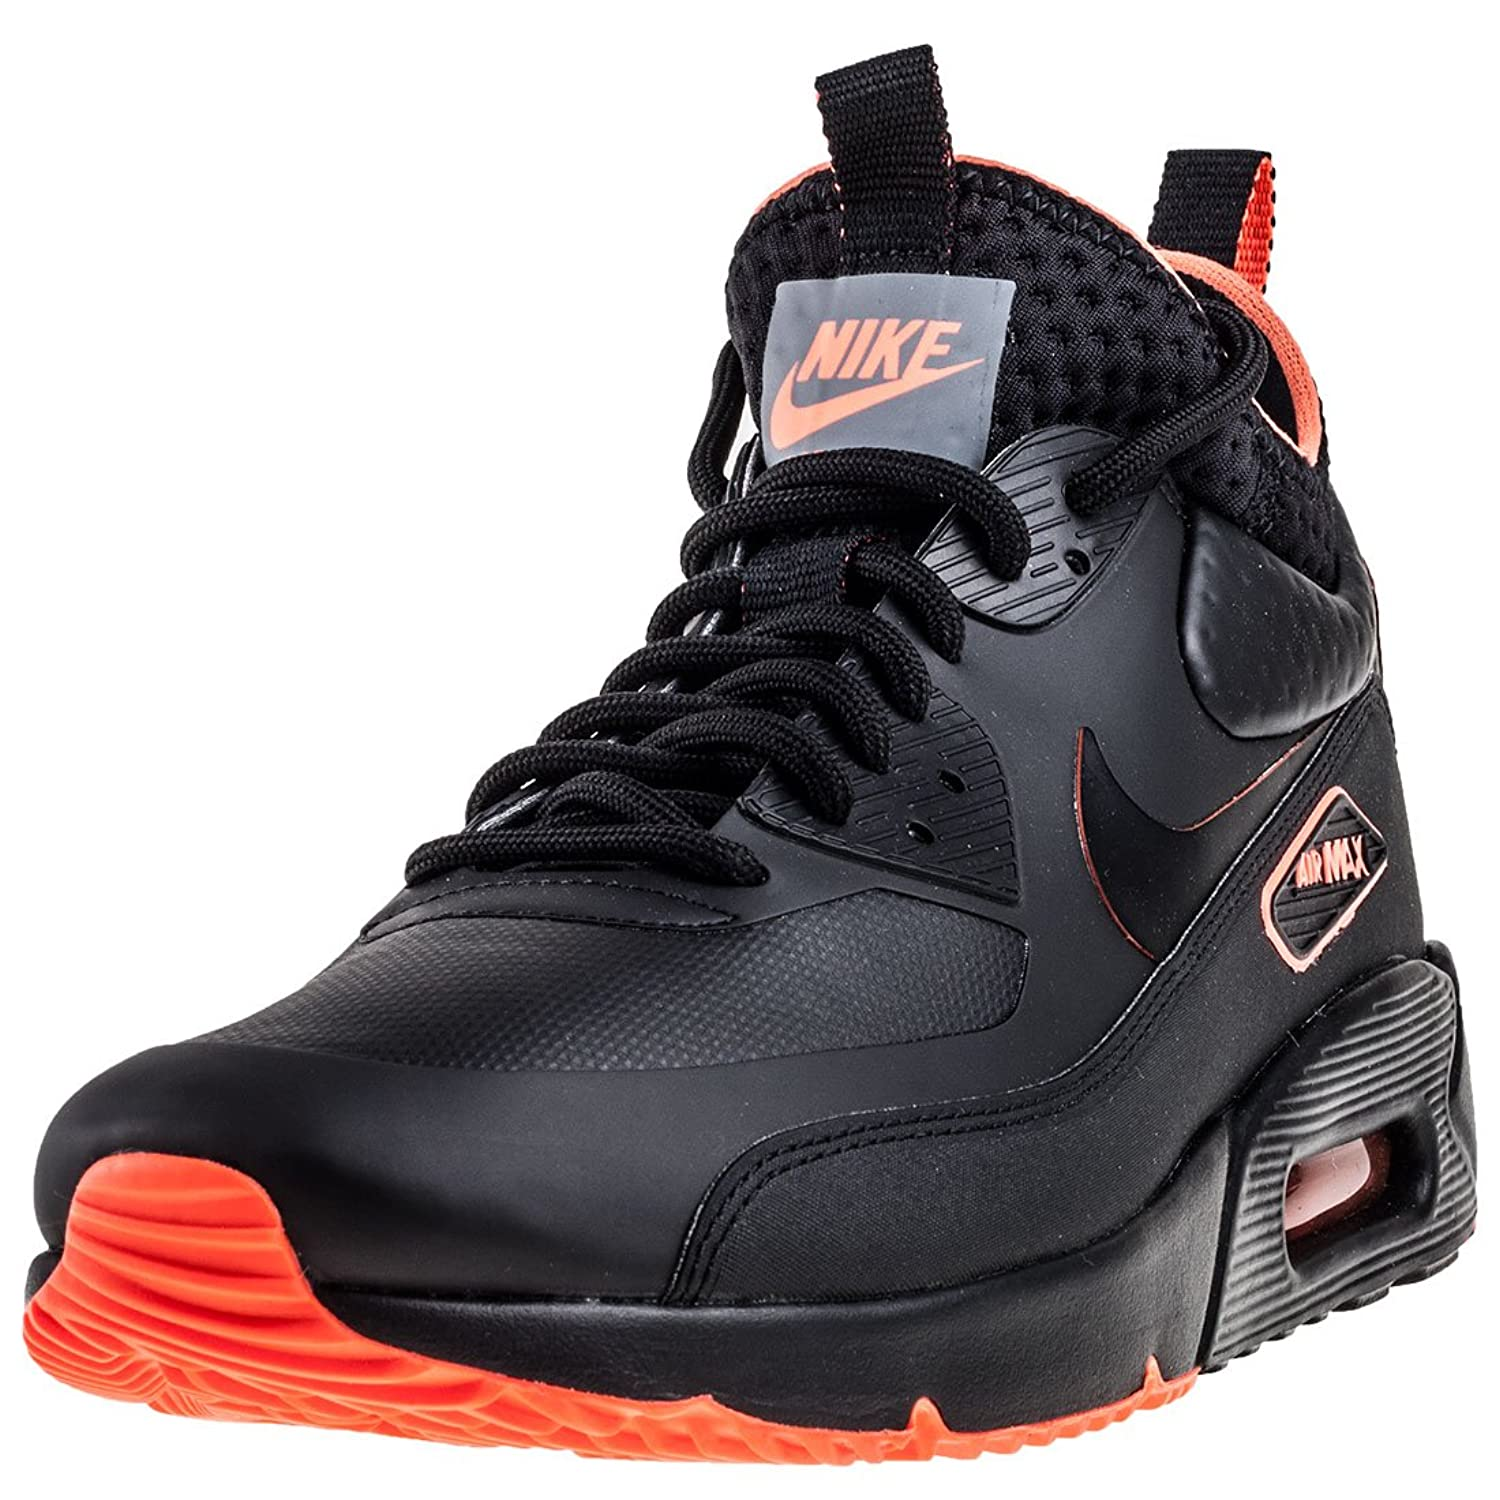 NIKE Herren Air Max 90 Ultra Mid Winter SE Schwarz Leder Synthetik Sneaker bb0c5652a